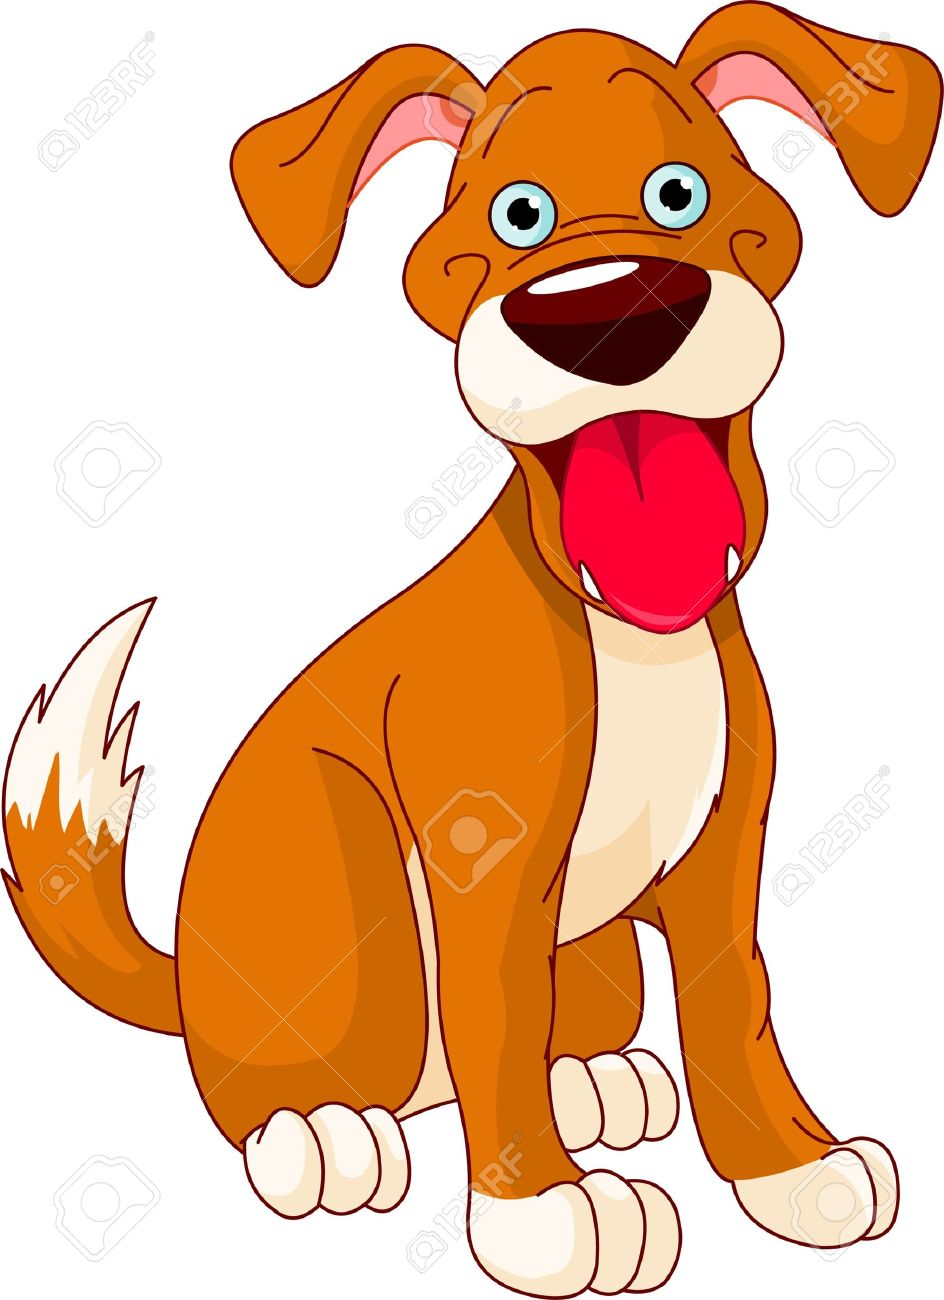 Dog smiling clipart with hearts svg free stock Smiling dog clipart - ClipartFest svg free stock